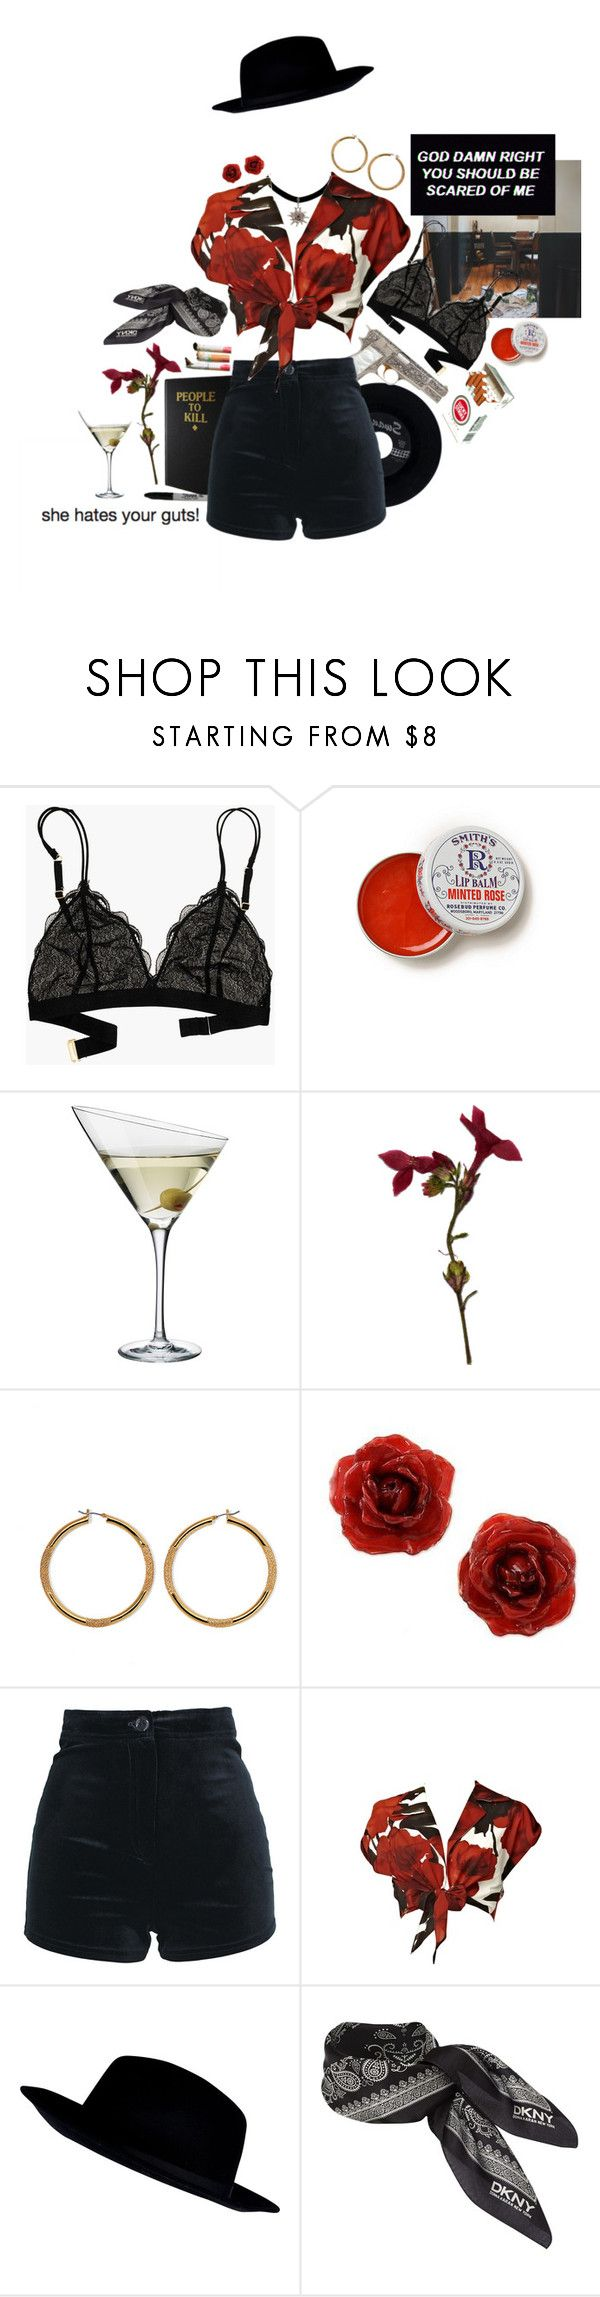 """""""Guts"""" by weedscruff ❤ liked on Polyvore featuring Madewell, CHESTERFIELD, Anthropologie, Eva Solo, Vince Camuto, NOVICA, Alice + Olivia, River Island and DKNY"""